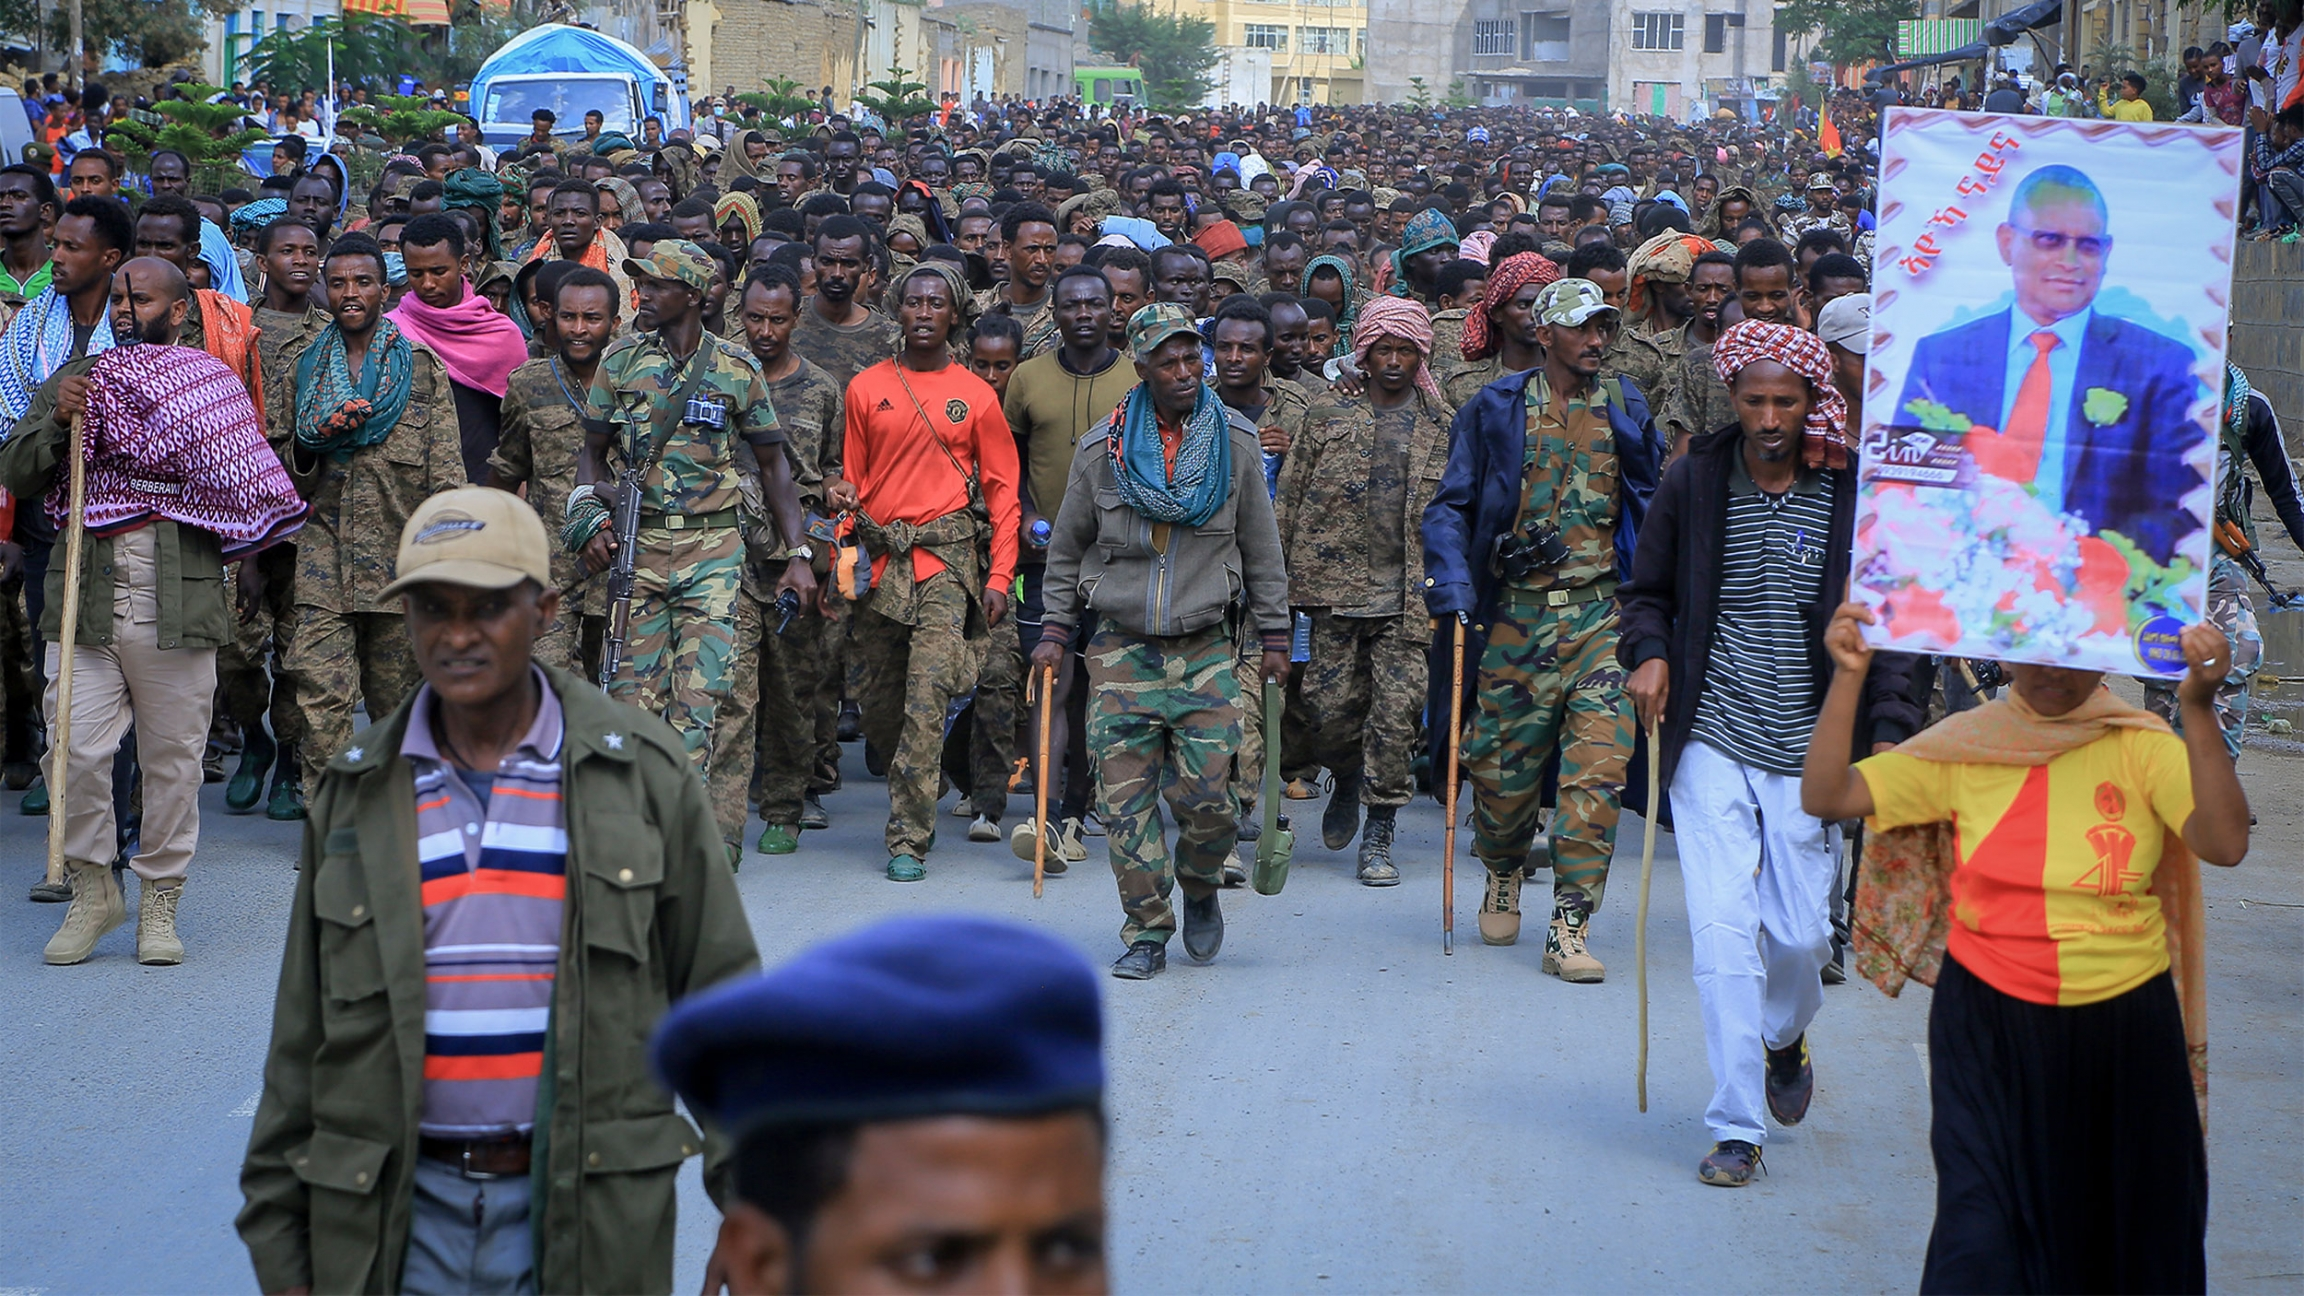 Captured members of the Ethiopian National Defense Force are marched through the streets to prison under guard by Tigray Forces